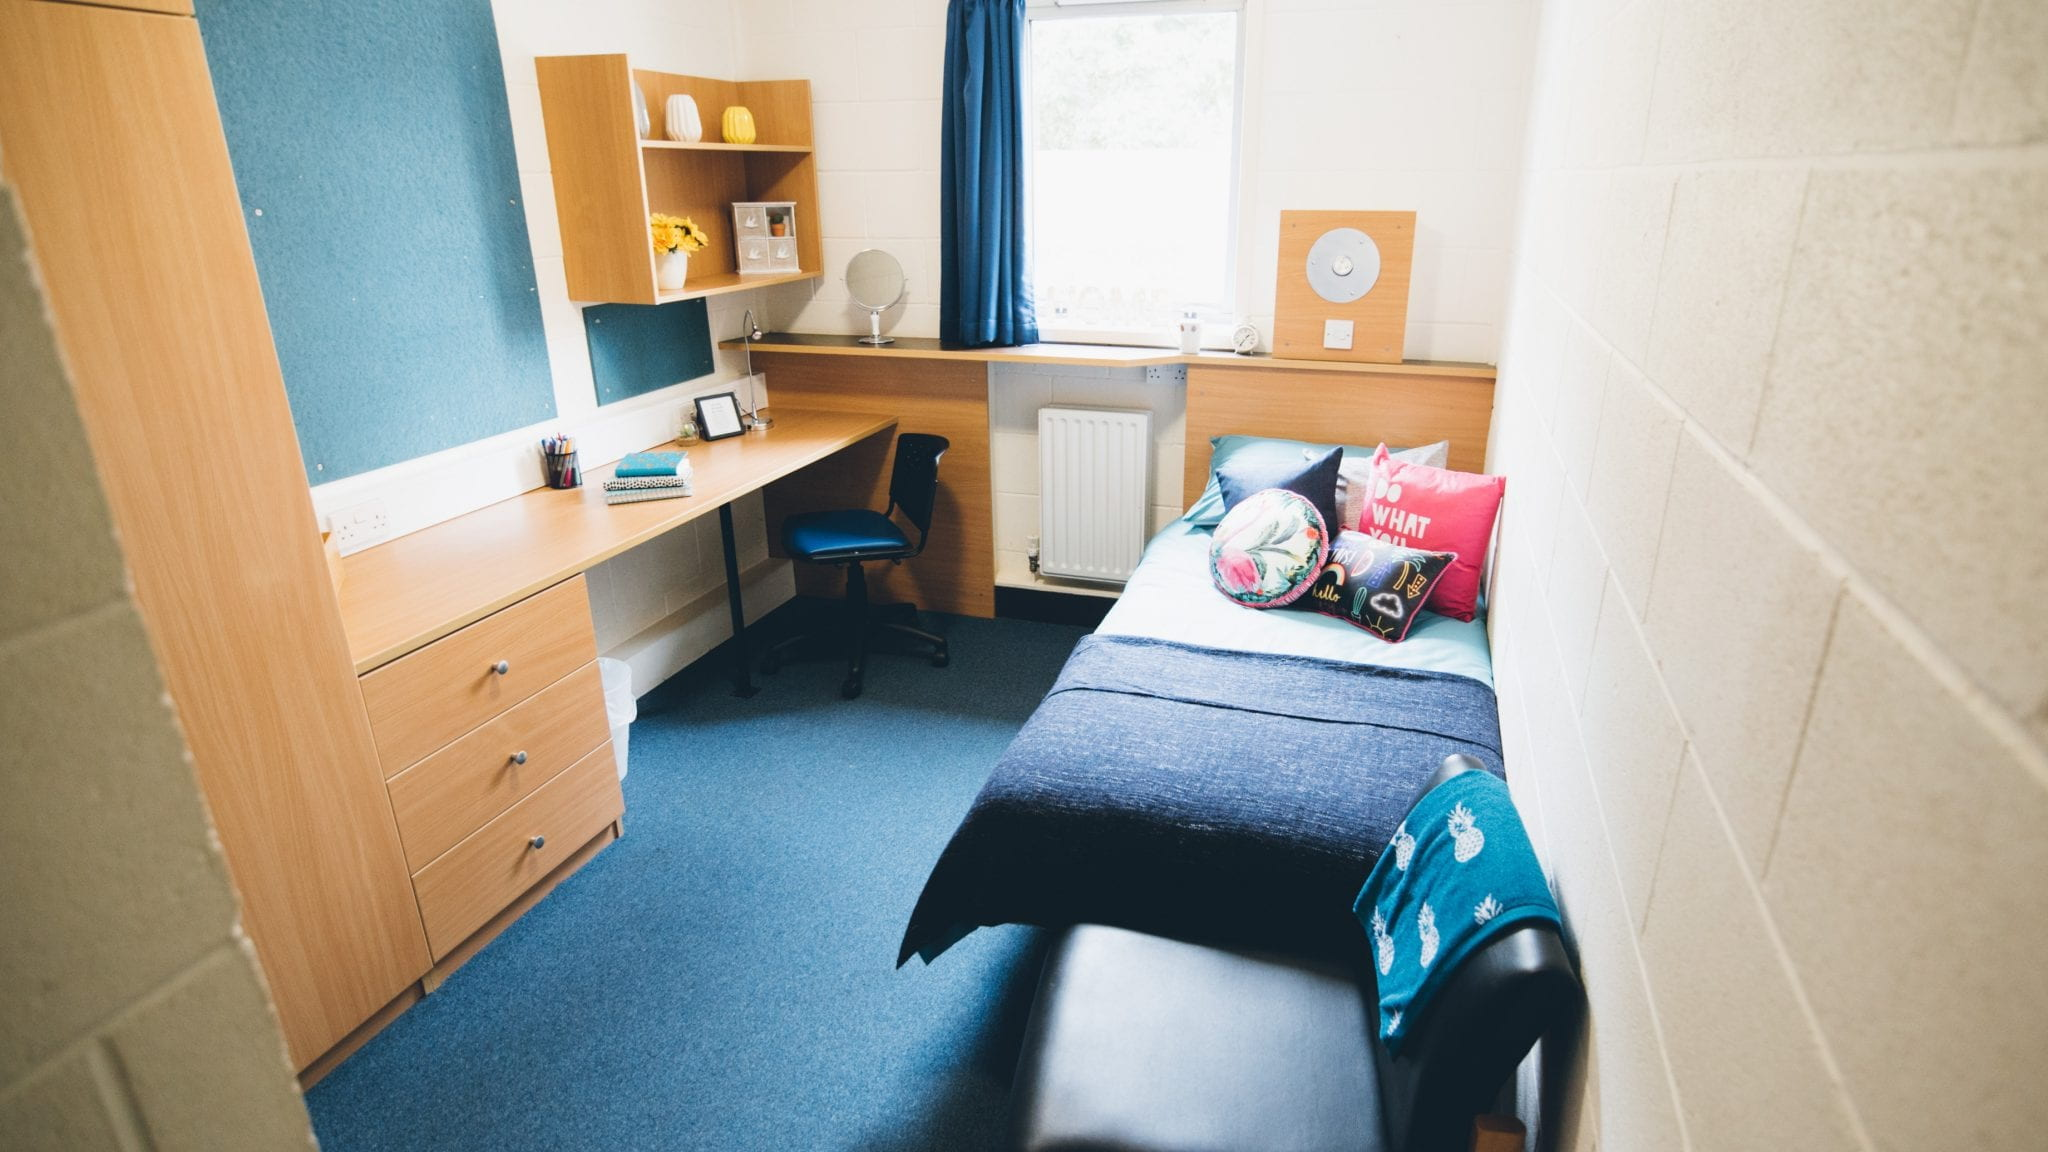 Lincoln courts en-suite room including single bed, wardrobe, desk, chair and drawers.